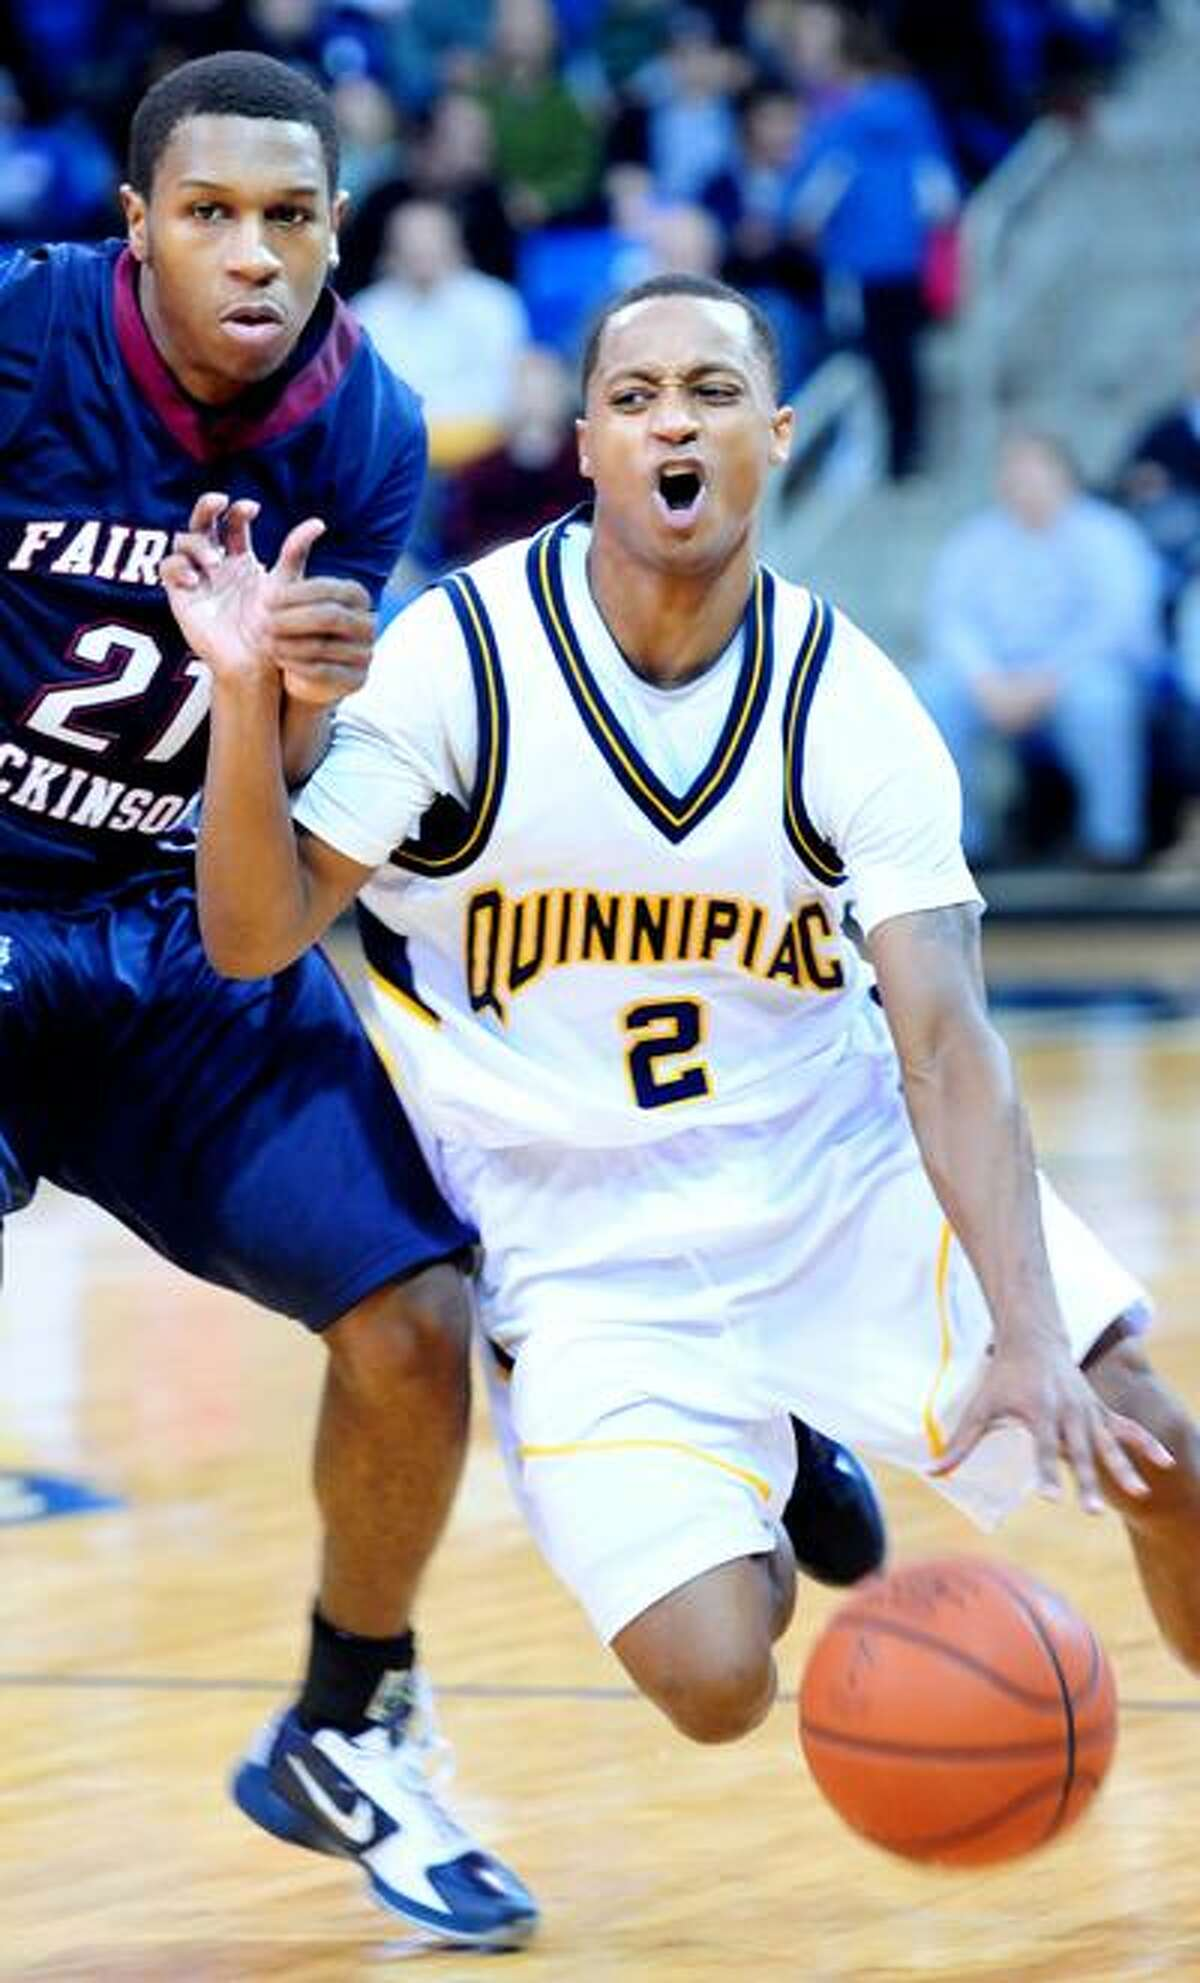 Dave Johnson (right) of Quinnipiac drives past DeShawn Dockery (left) of Fairleigh Dickinson in the first half on 2/26/2011.Photo by Arnold Gold/New Haven Register AG0404A